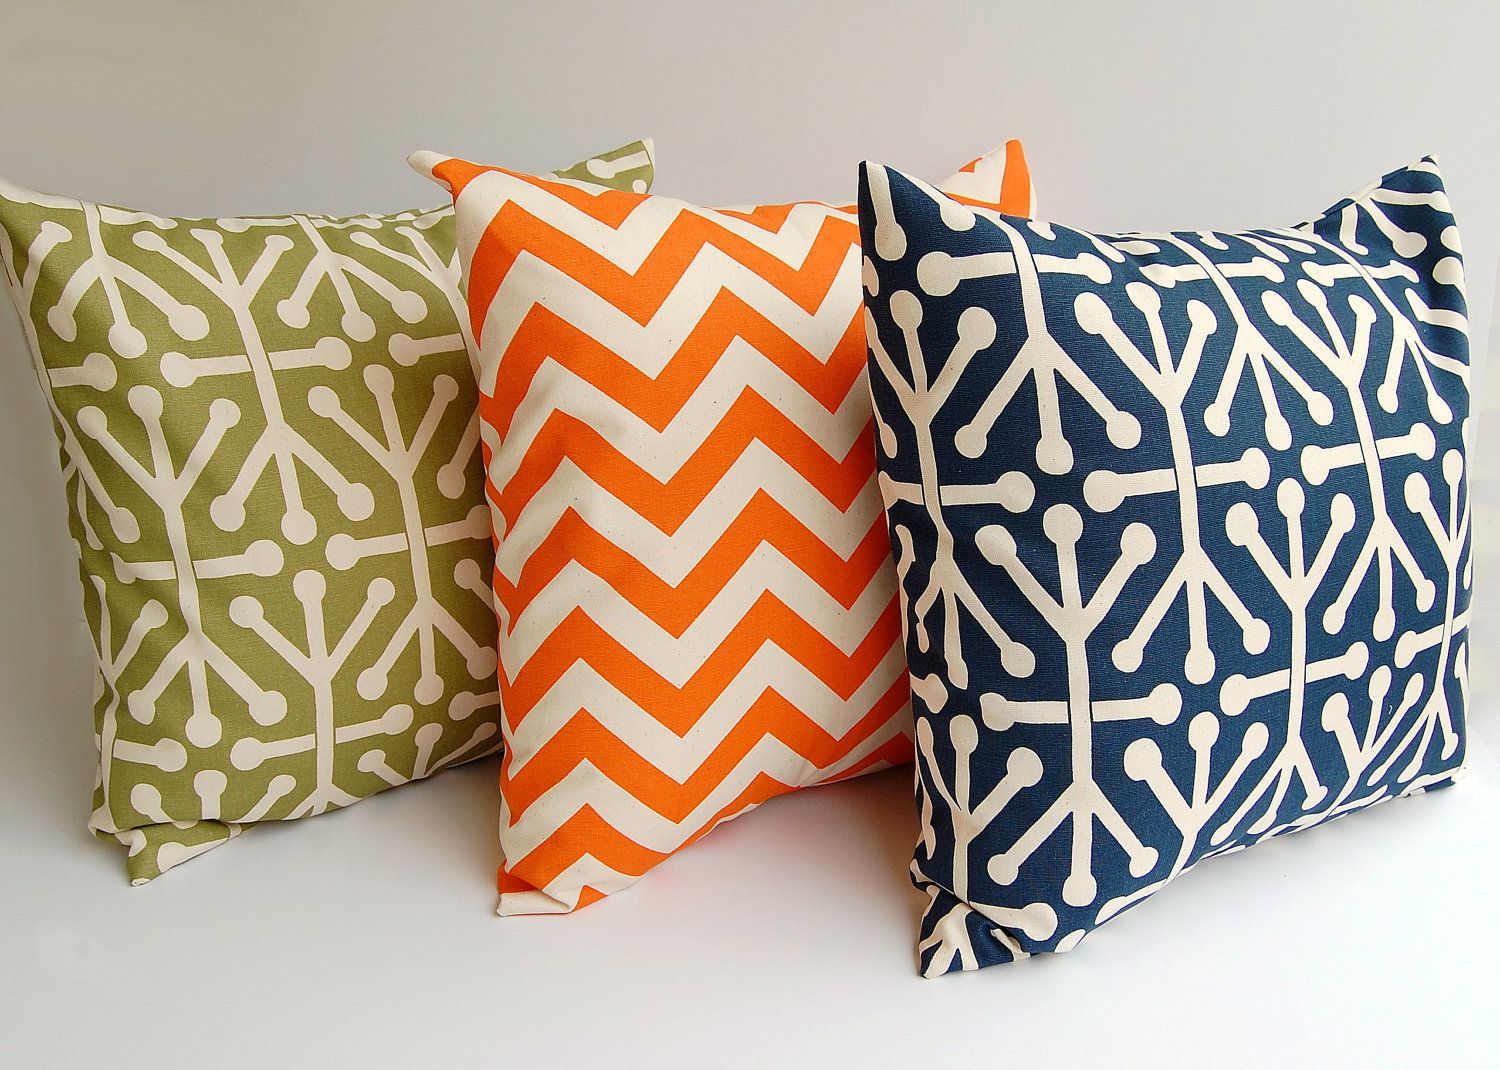 Blue Green Orange Throw Pillows : Throw pillows set of three 16 x 16 inches decorative pillow covers natural orange navy blue ...